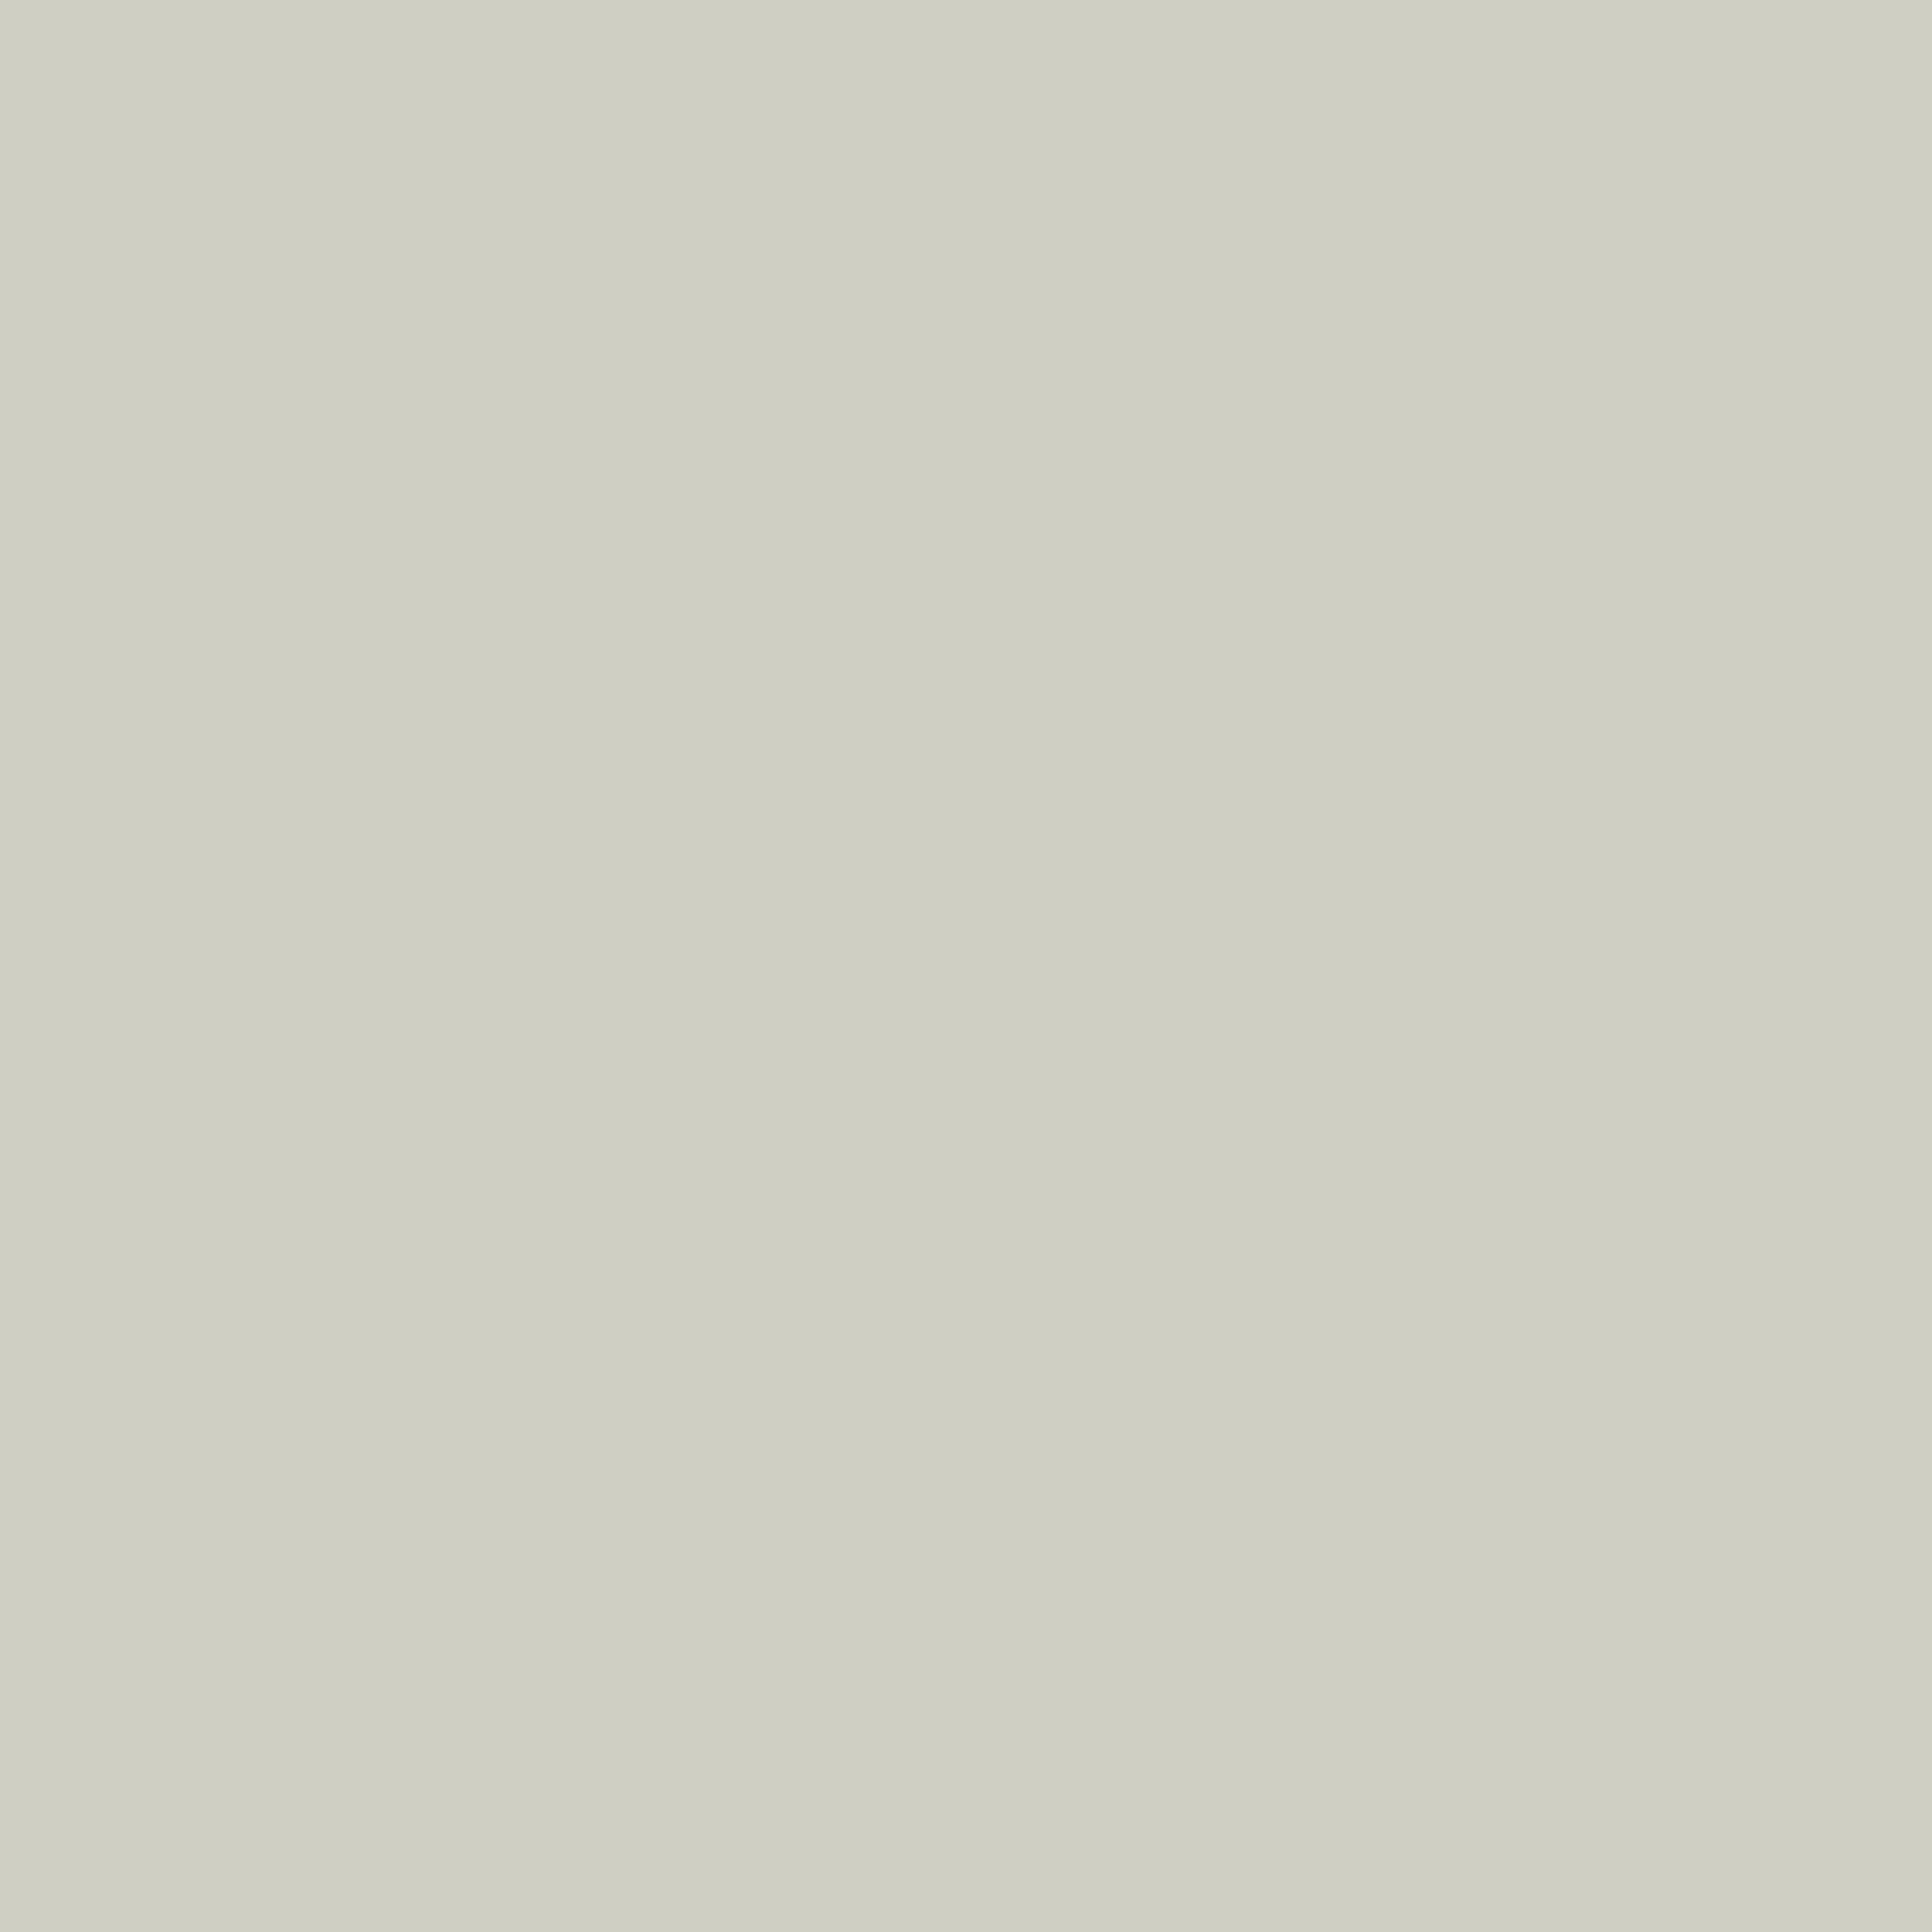 2732x2732 Pastel Gray Solid Color Background